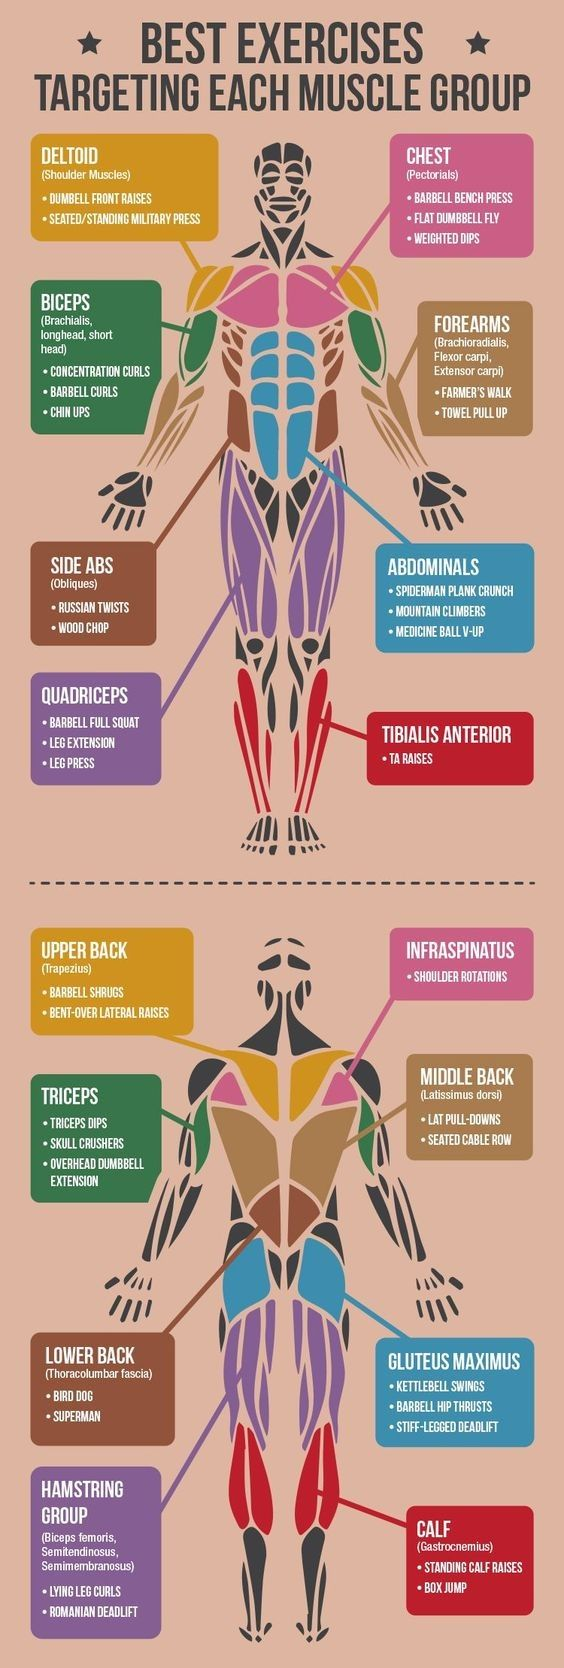 Target different muscle groups